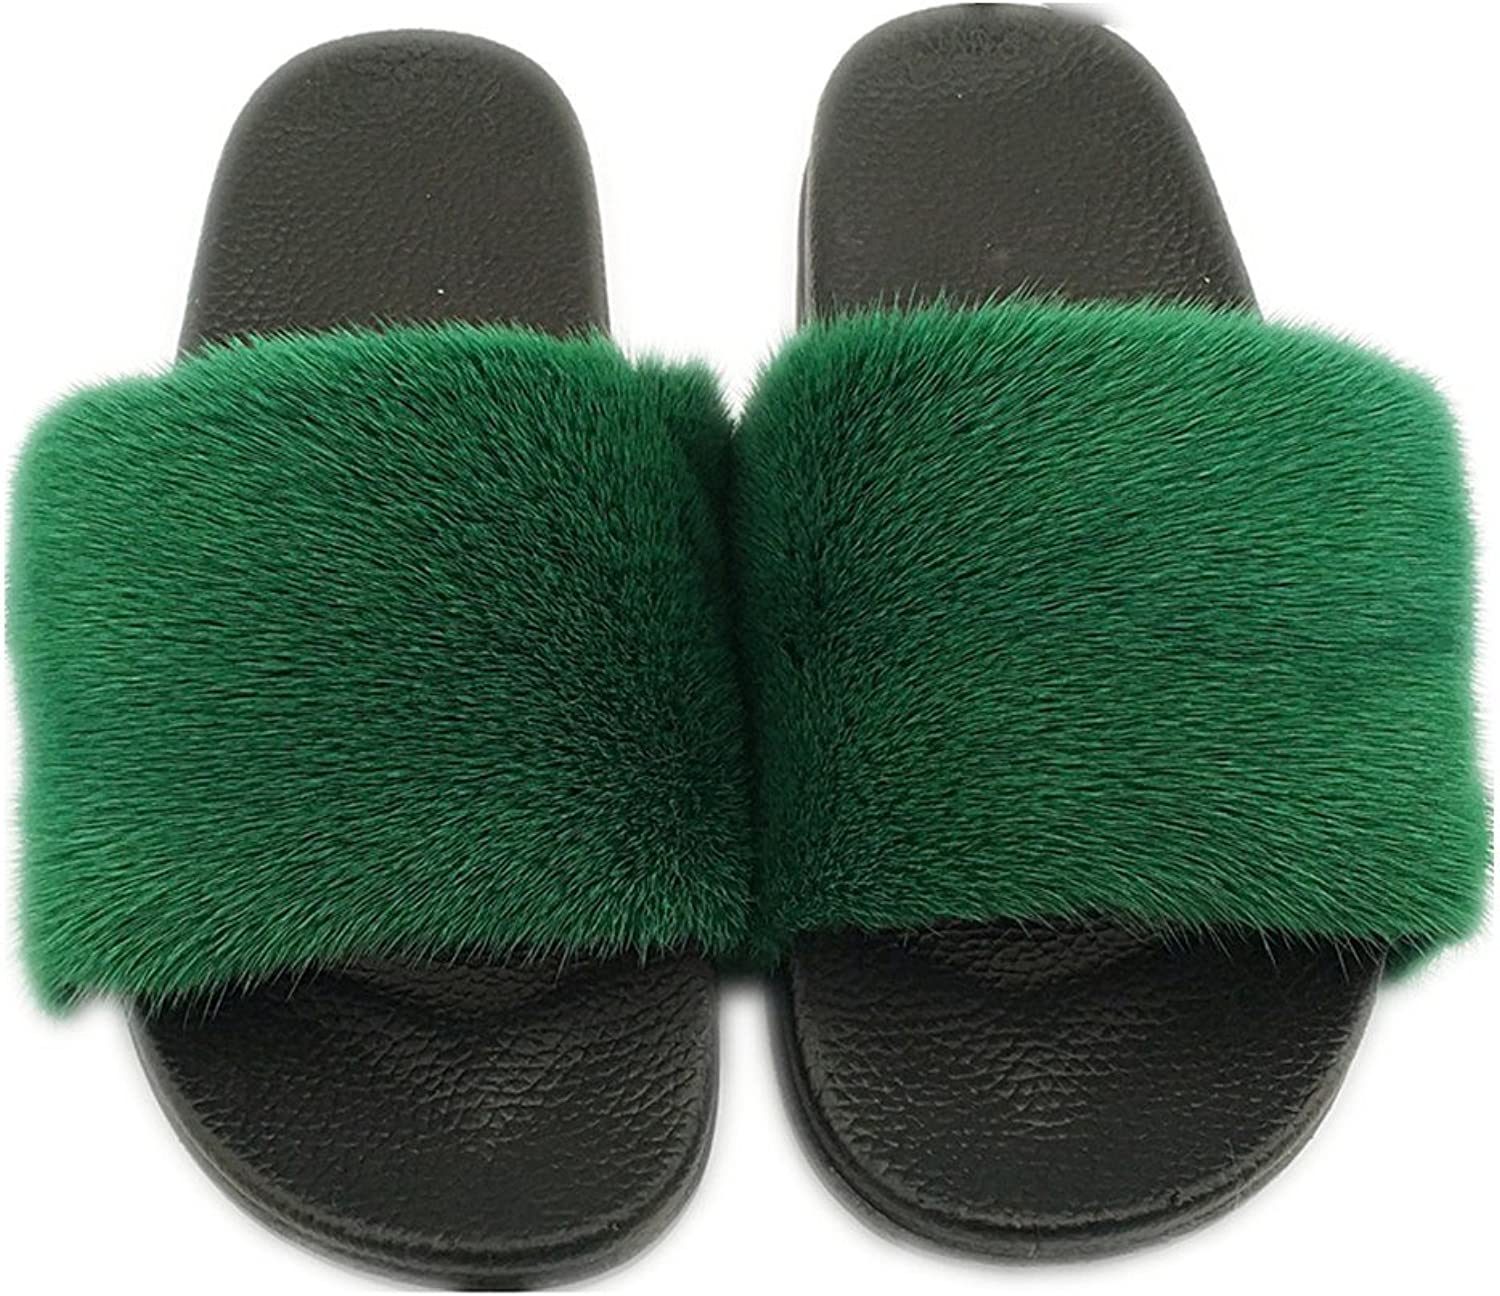 QMFUR Fashion Women's Real Mink Fur Slippers Soft Sole Flat (11, Black-Green)